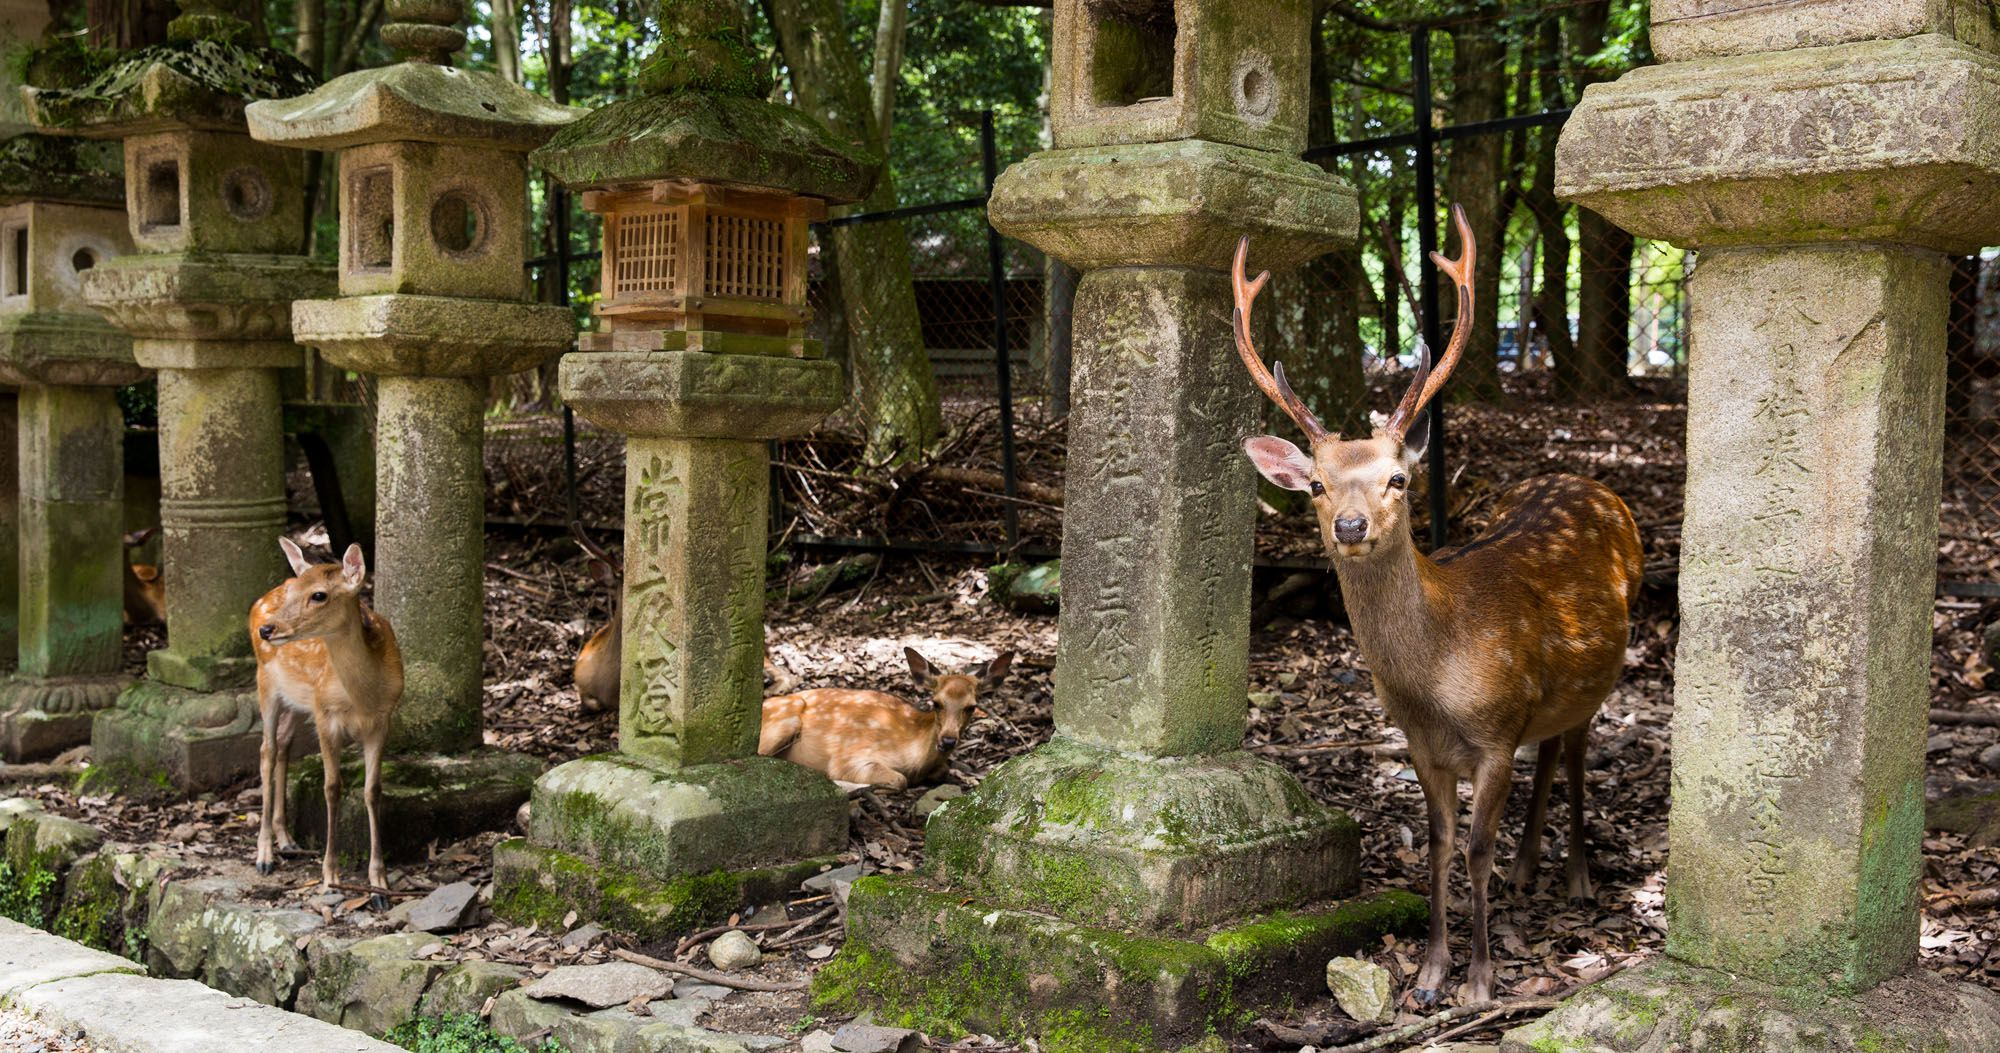 Feeding Deer in Nara Japan